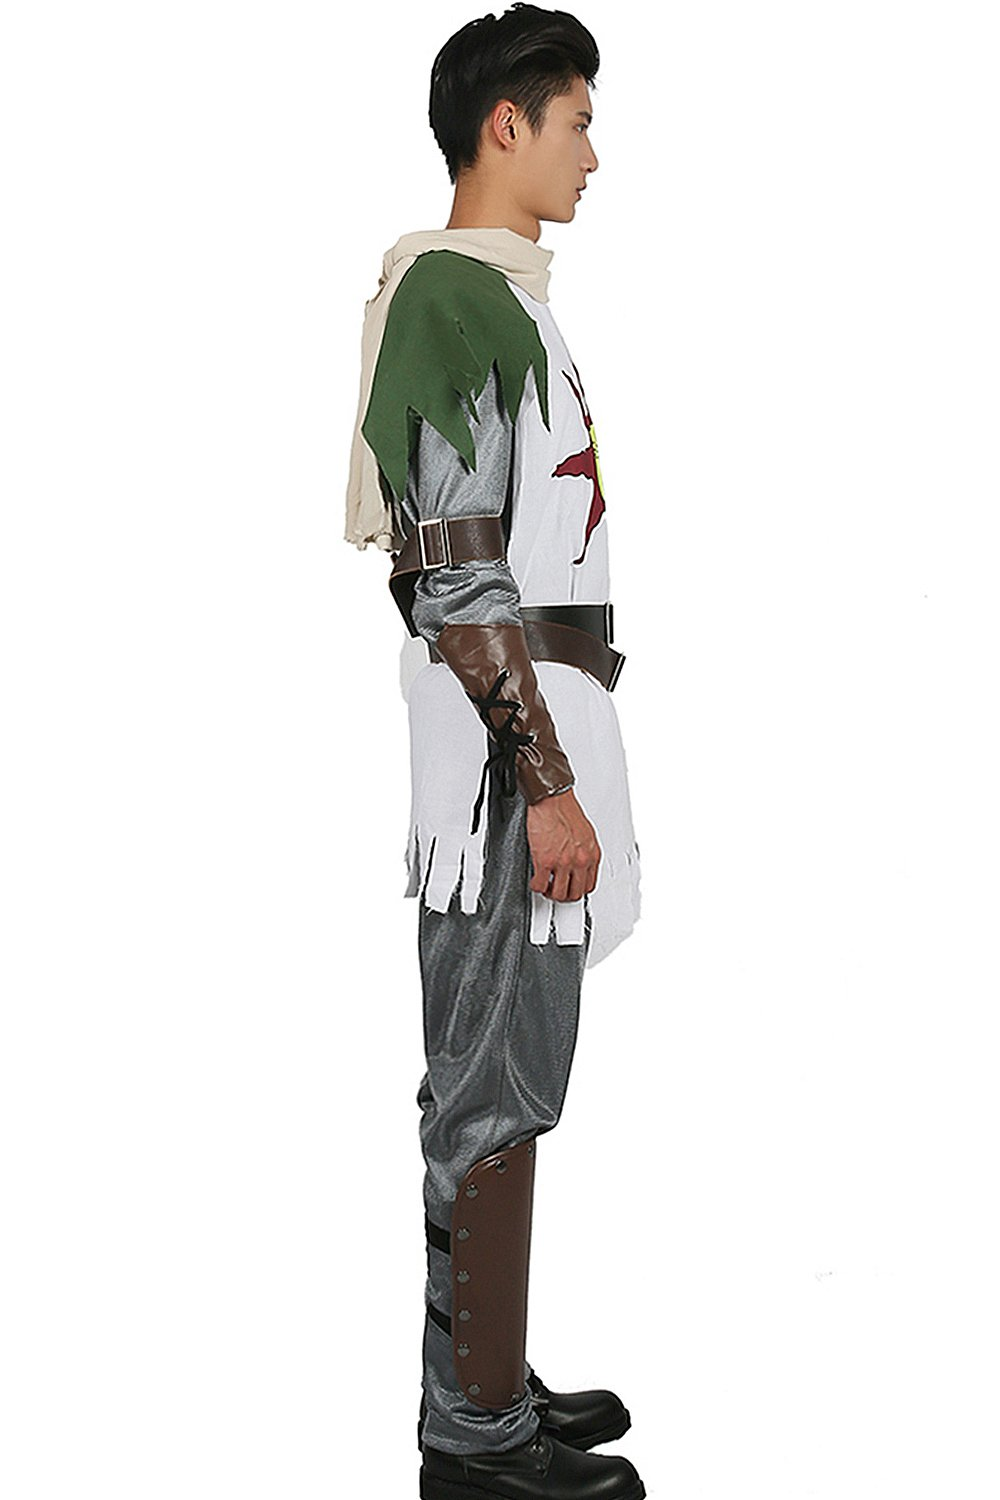 Solaire Costume Sun Warrior Outfit for Halloween Cosplay L by xcostume (Image #4)